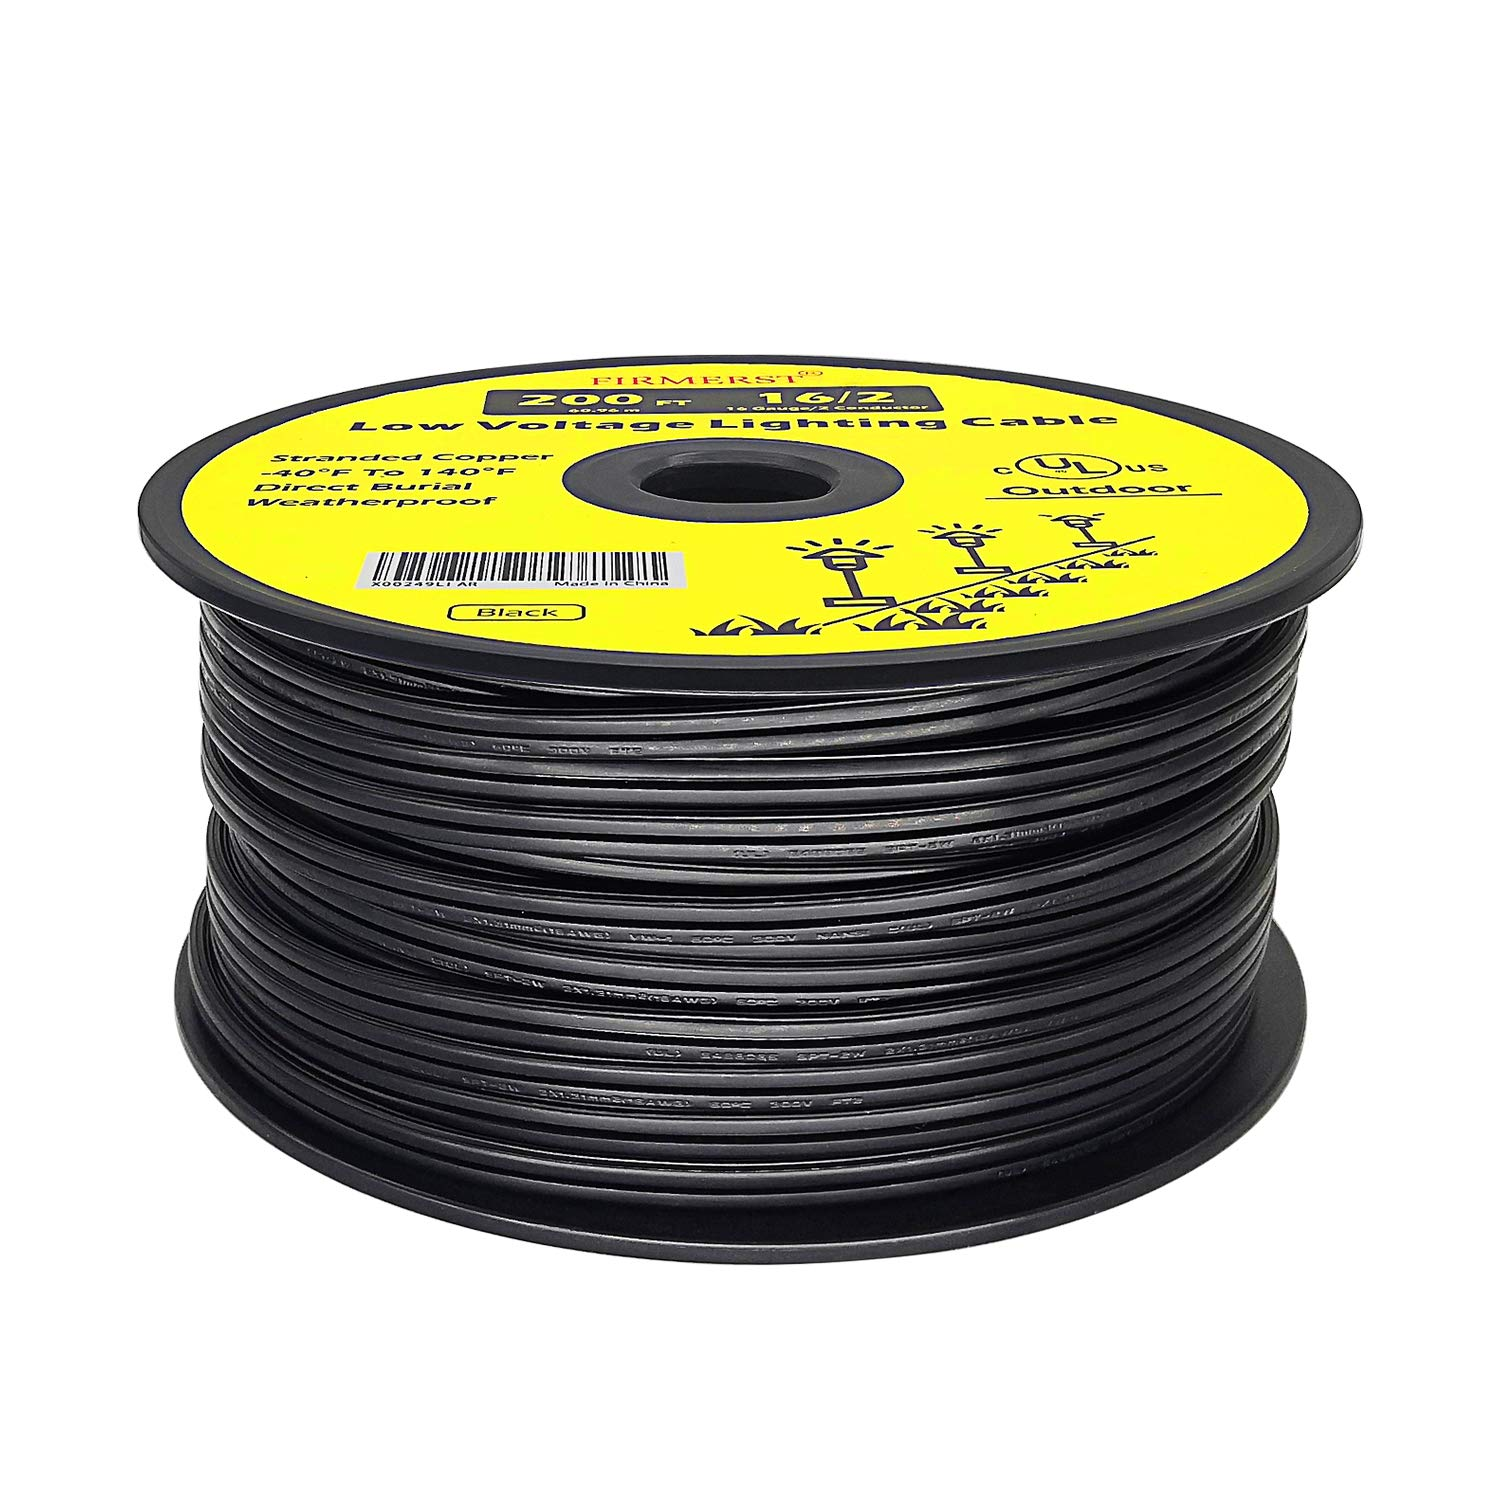 FIRMERST 16/2 Low Voltage Landscape Wire Outdoor Lighting Cable UL Listed 200 Feet